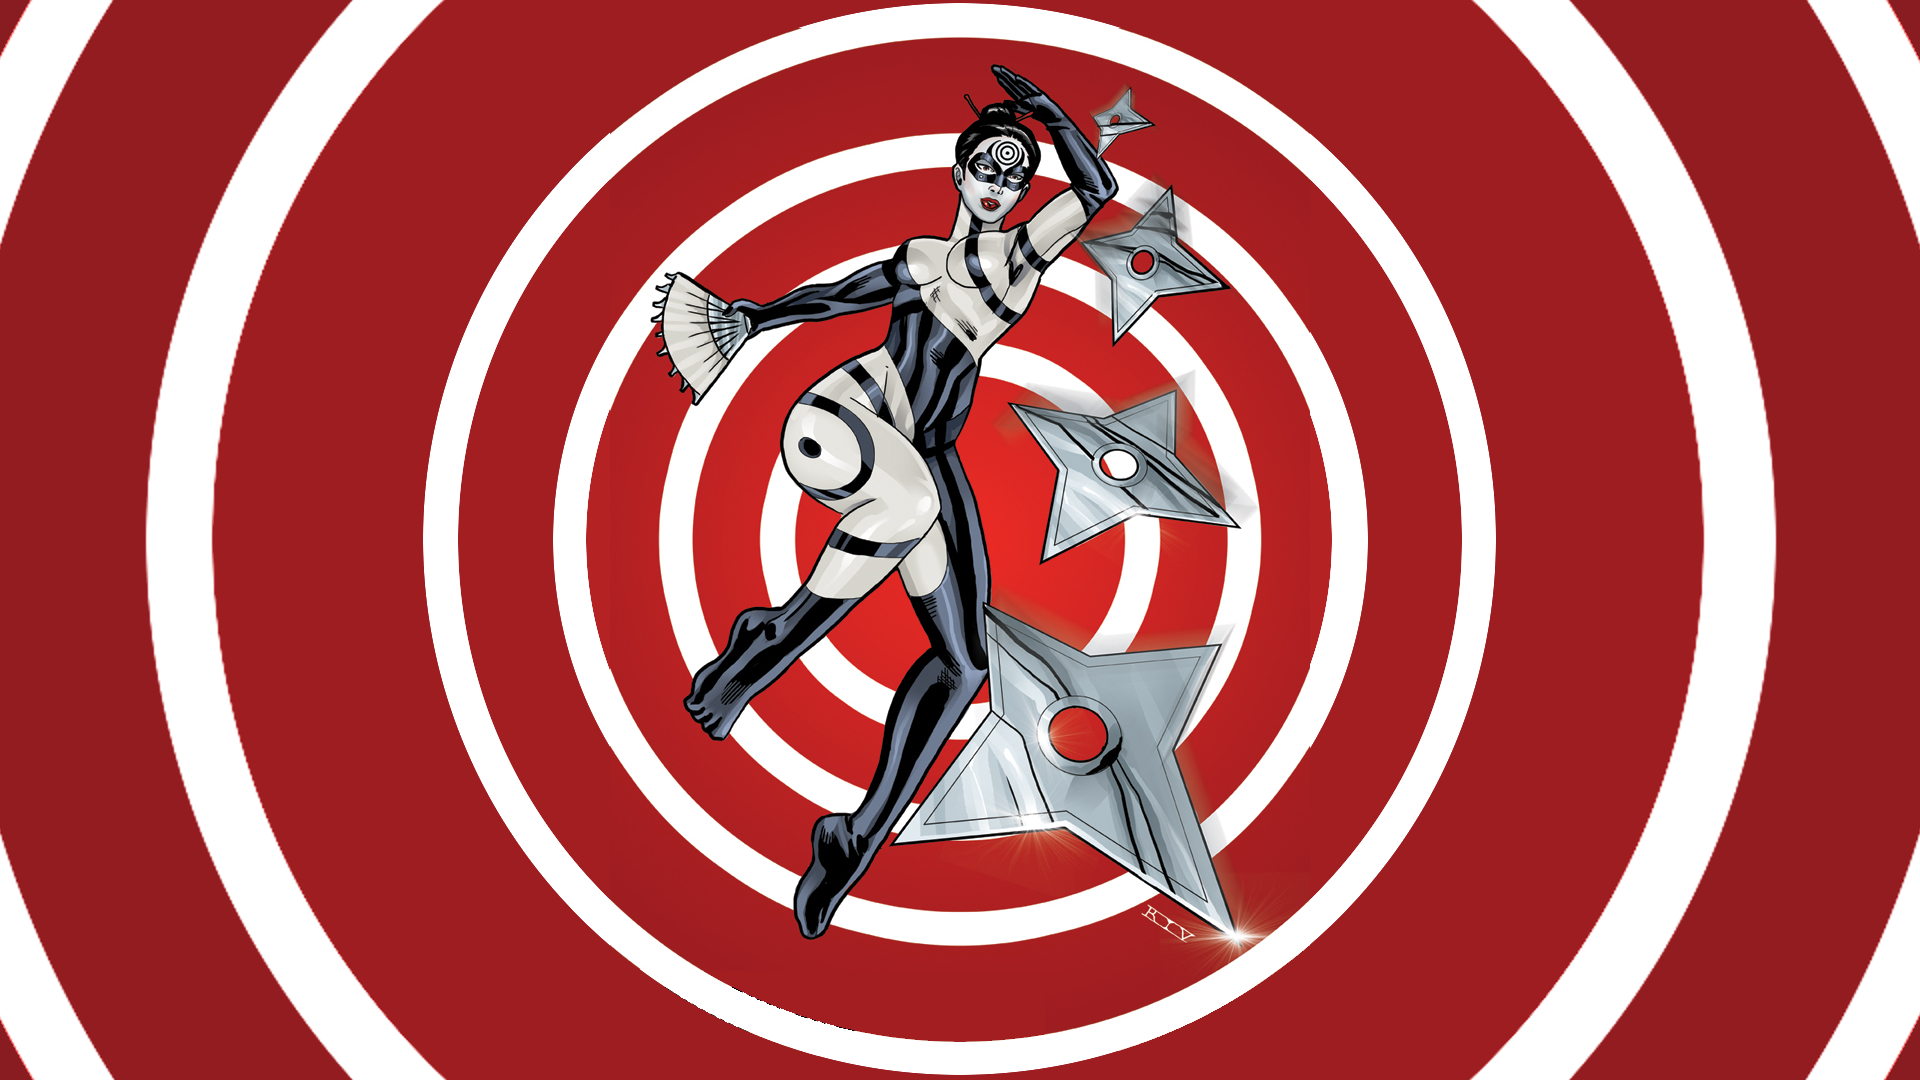 Lady Bullseye Marvel Comics Wallpaper - Resolution ...